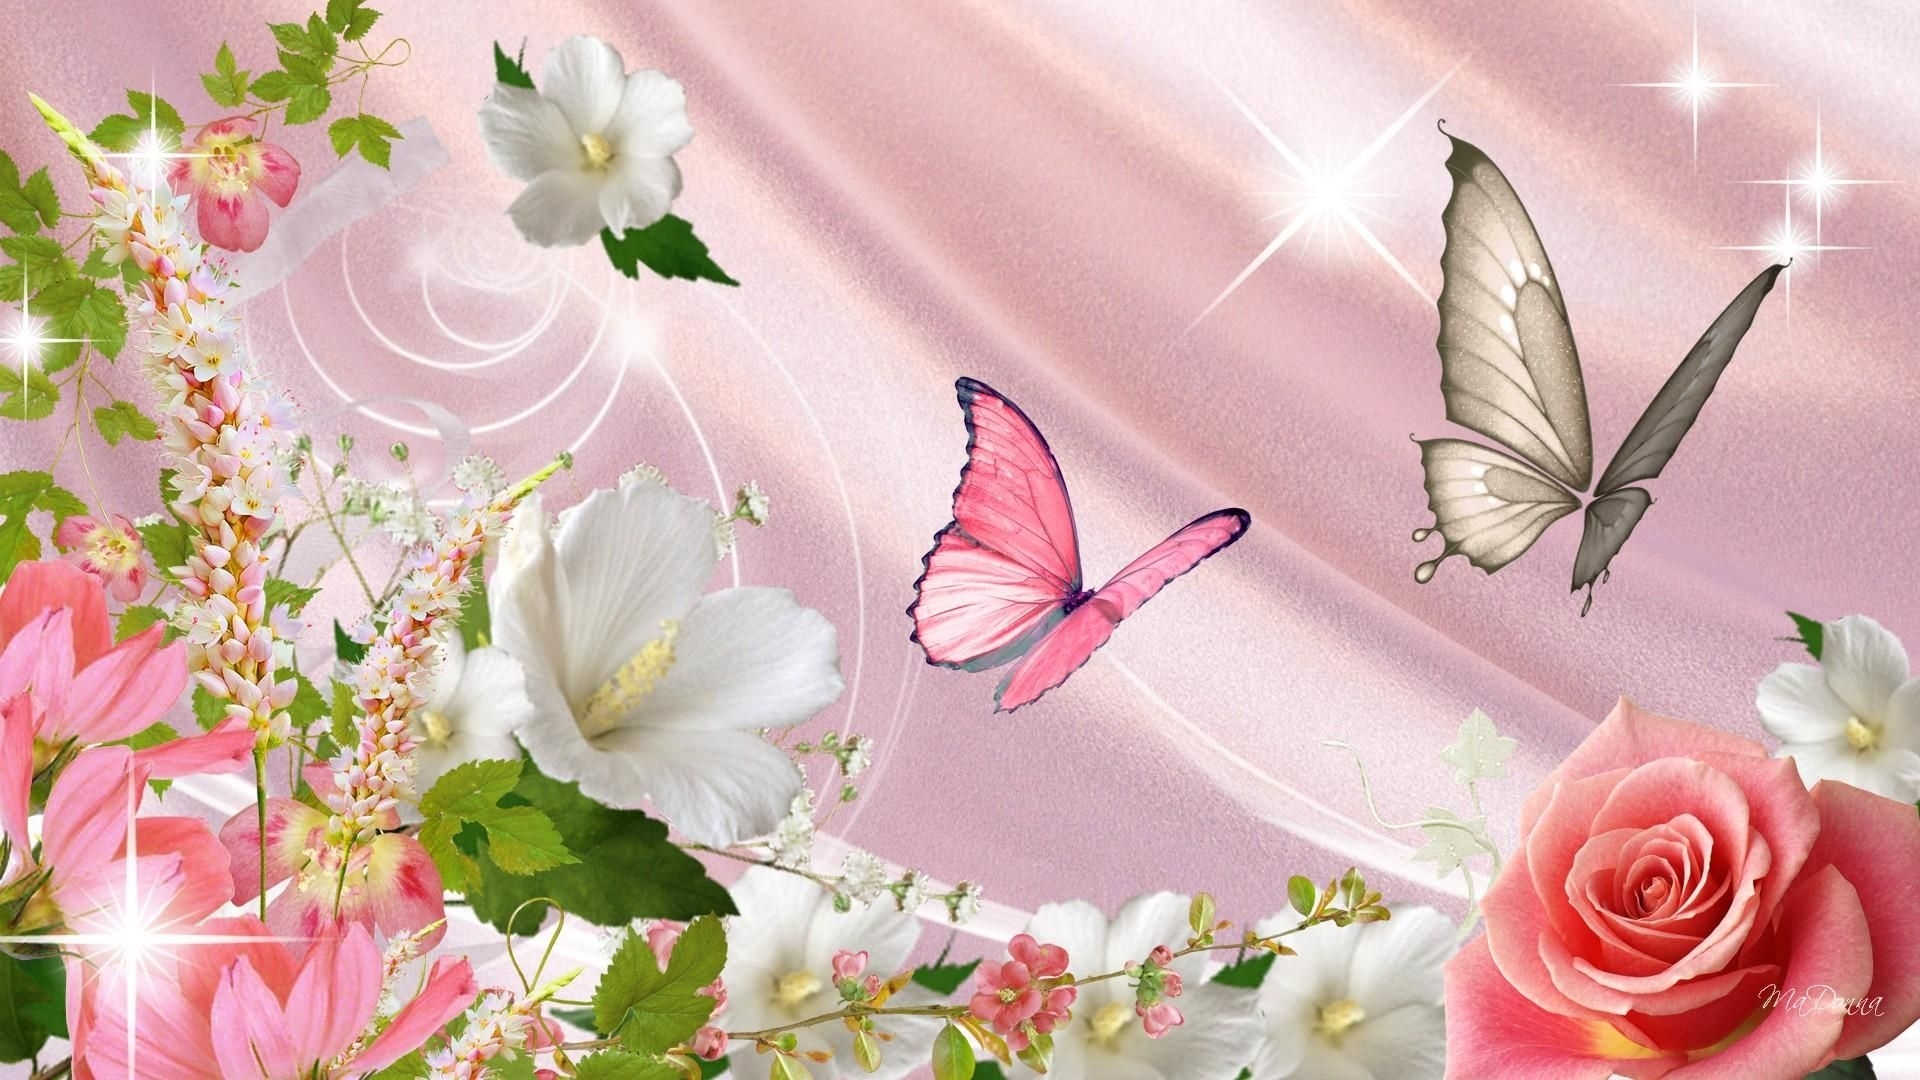 spring flowers and butterflies | shiinamomo | nature | pinterest